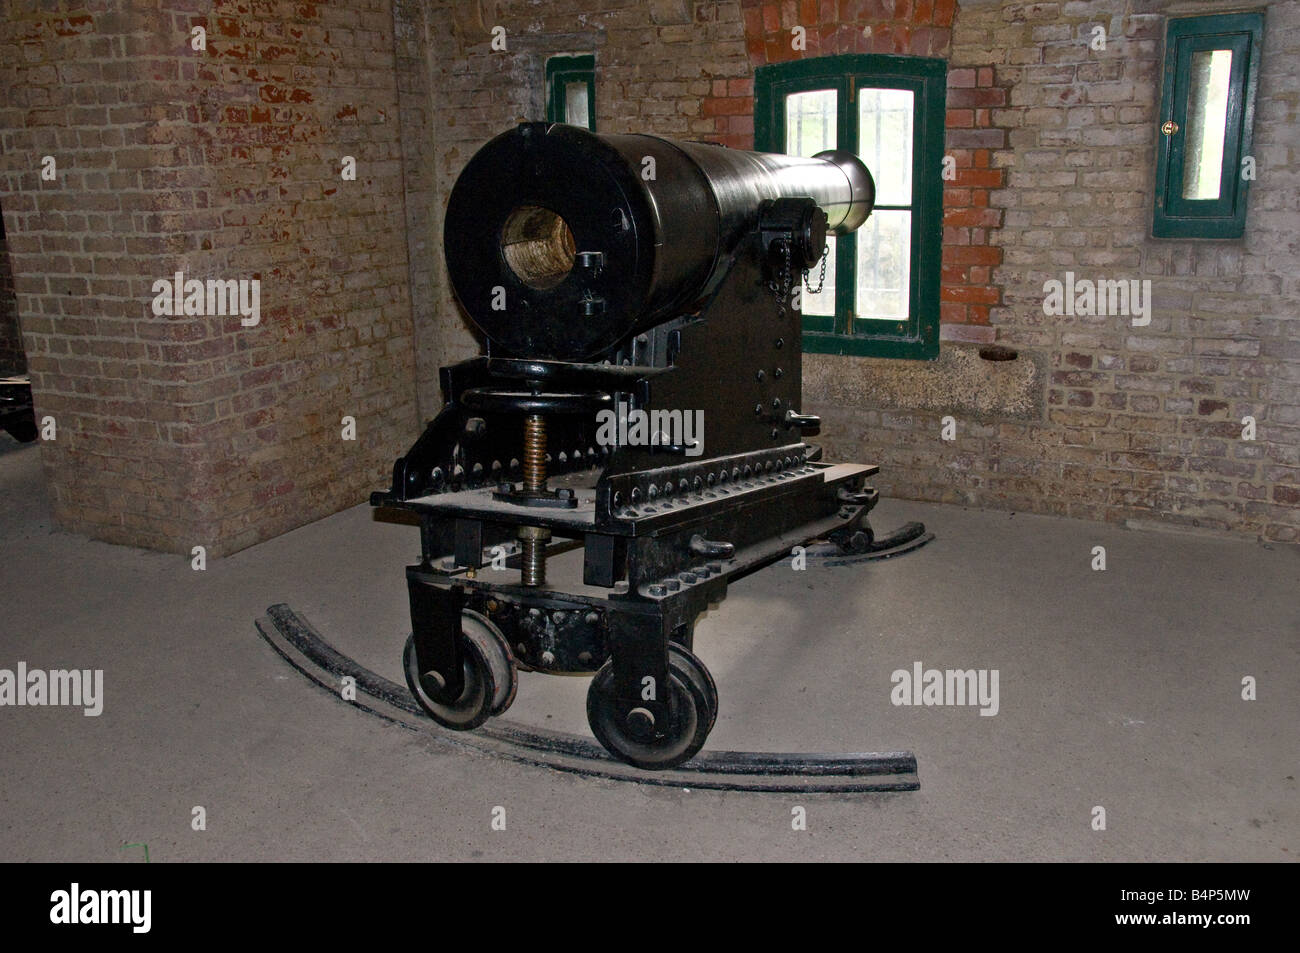 Man Cave Fort Nelson : Portsdown stock photos & images alamy